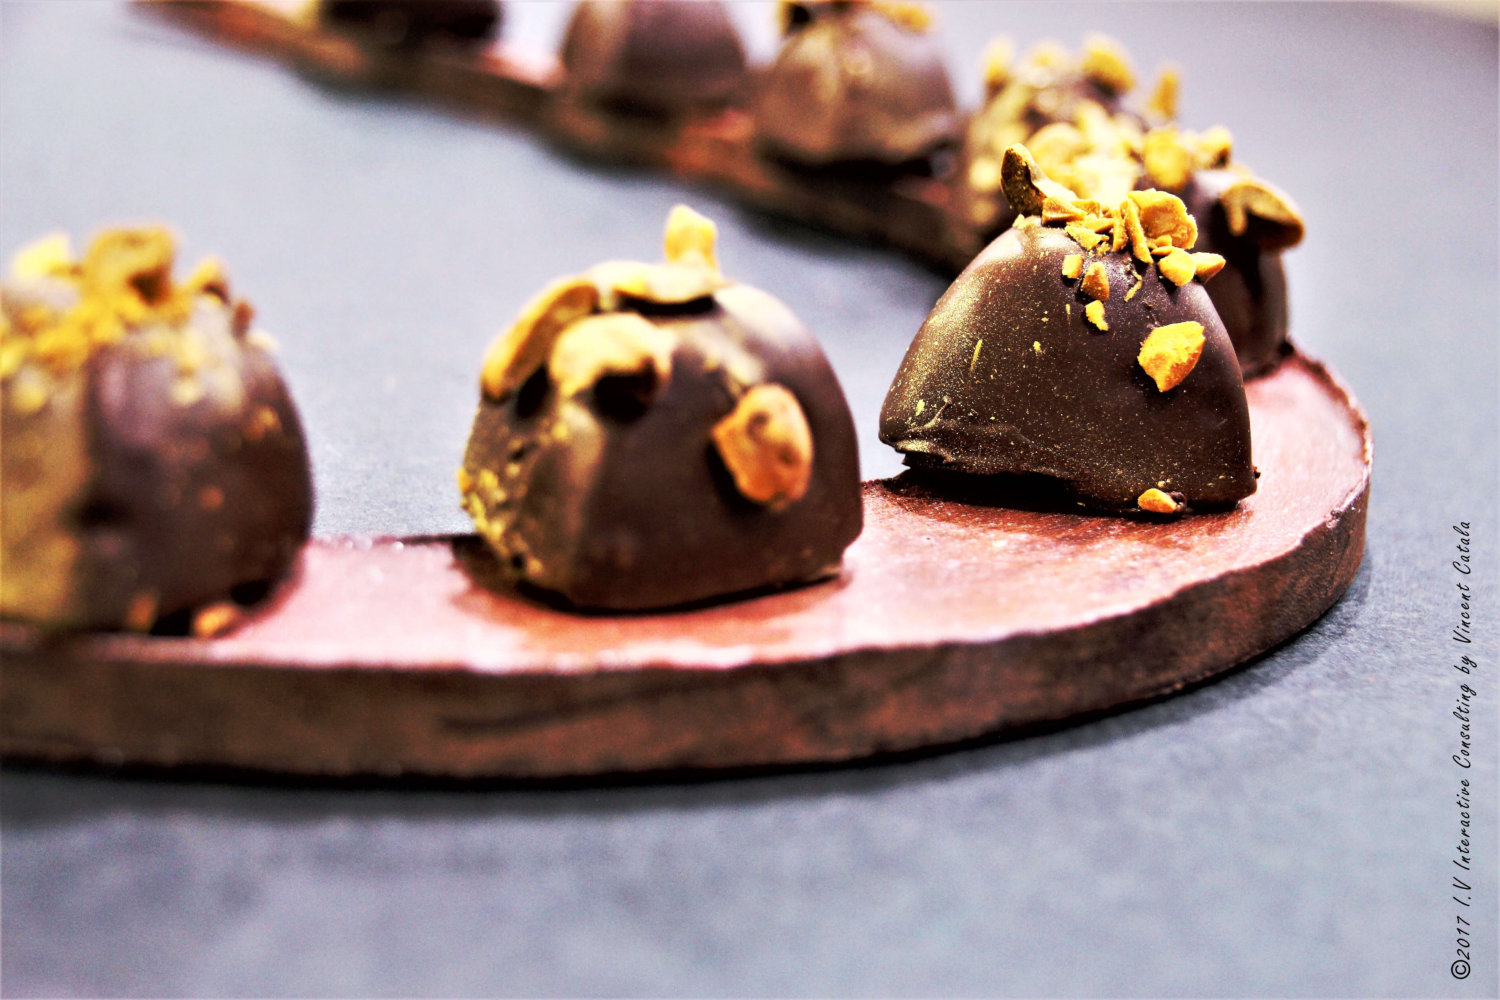 Rochet chocolat by Vincent Catala Chef Pâtissier & Cuisinier French Private Cuisine & Pastry Chef - Catering in Miami